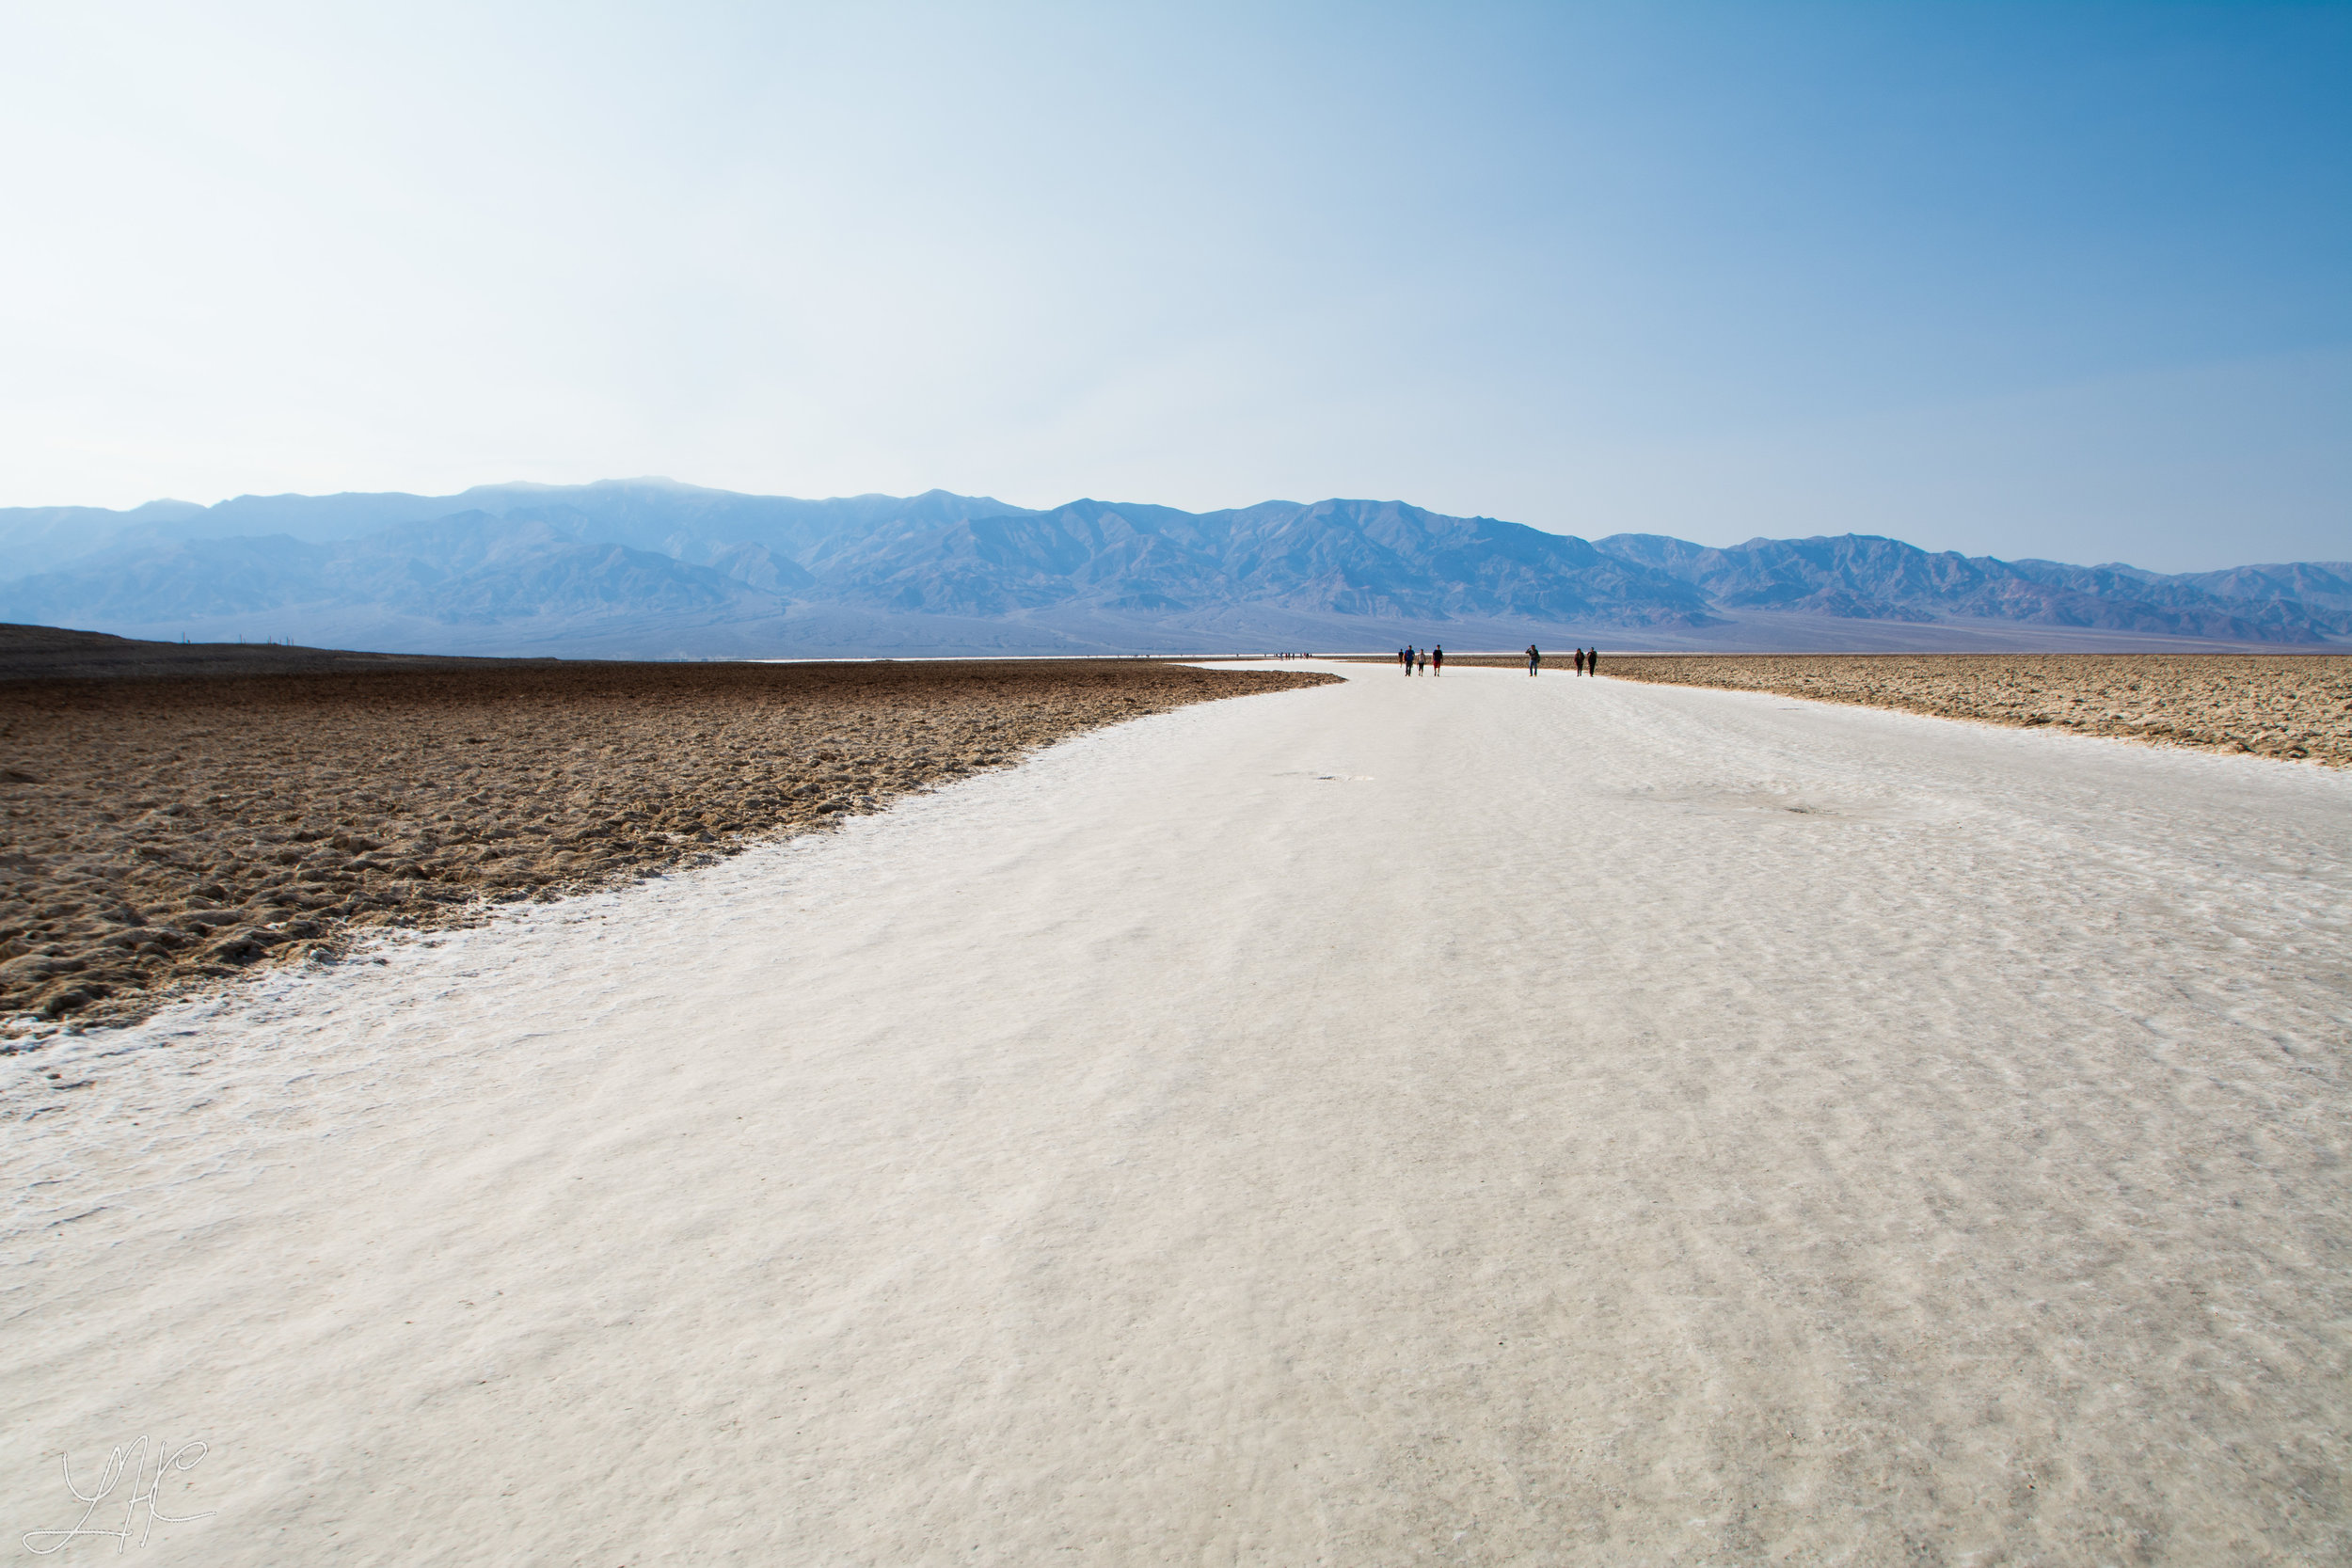 Lowest point in Contiguous US, Badwater Basin (-282 ft below sea level), Death Valley National Park